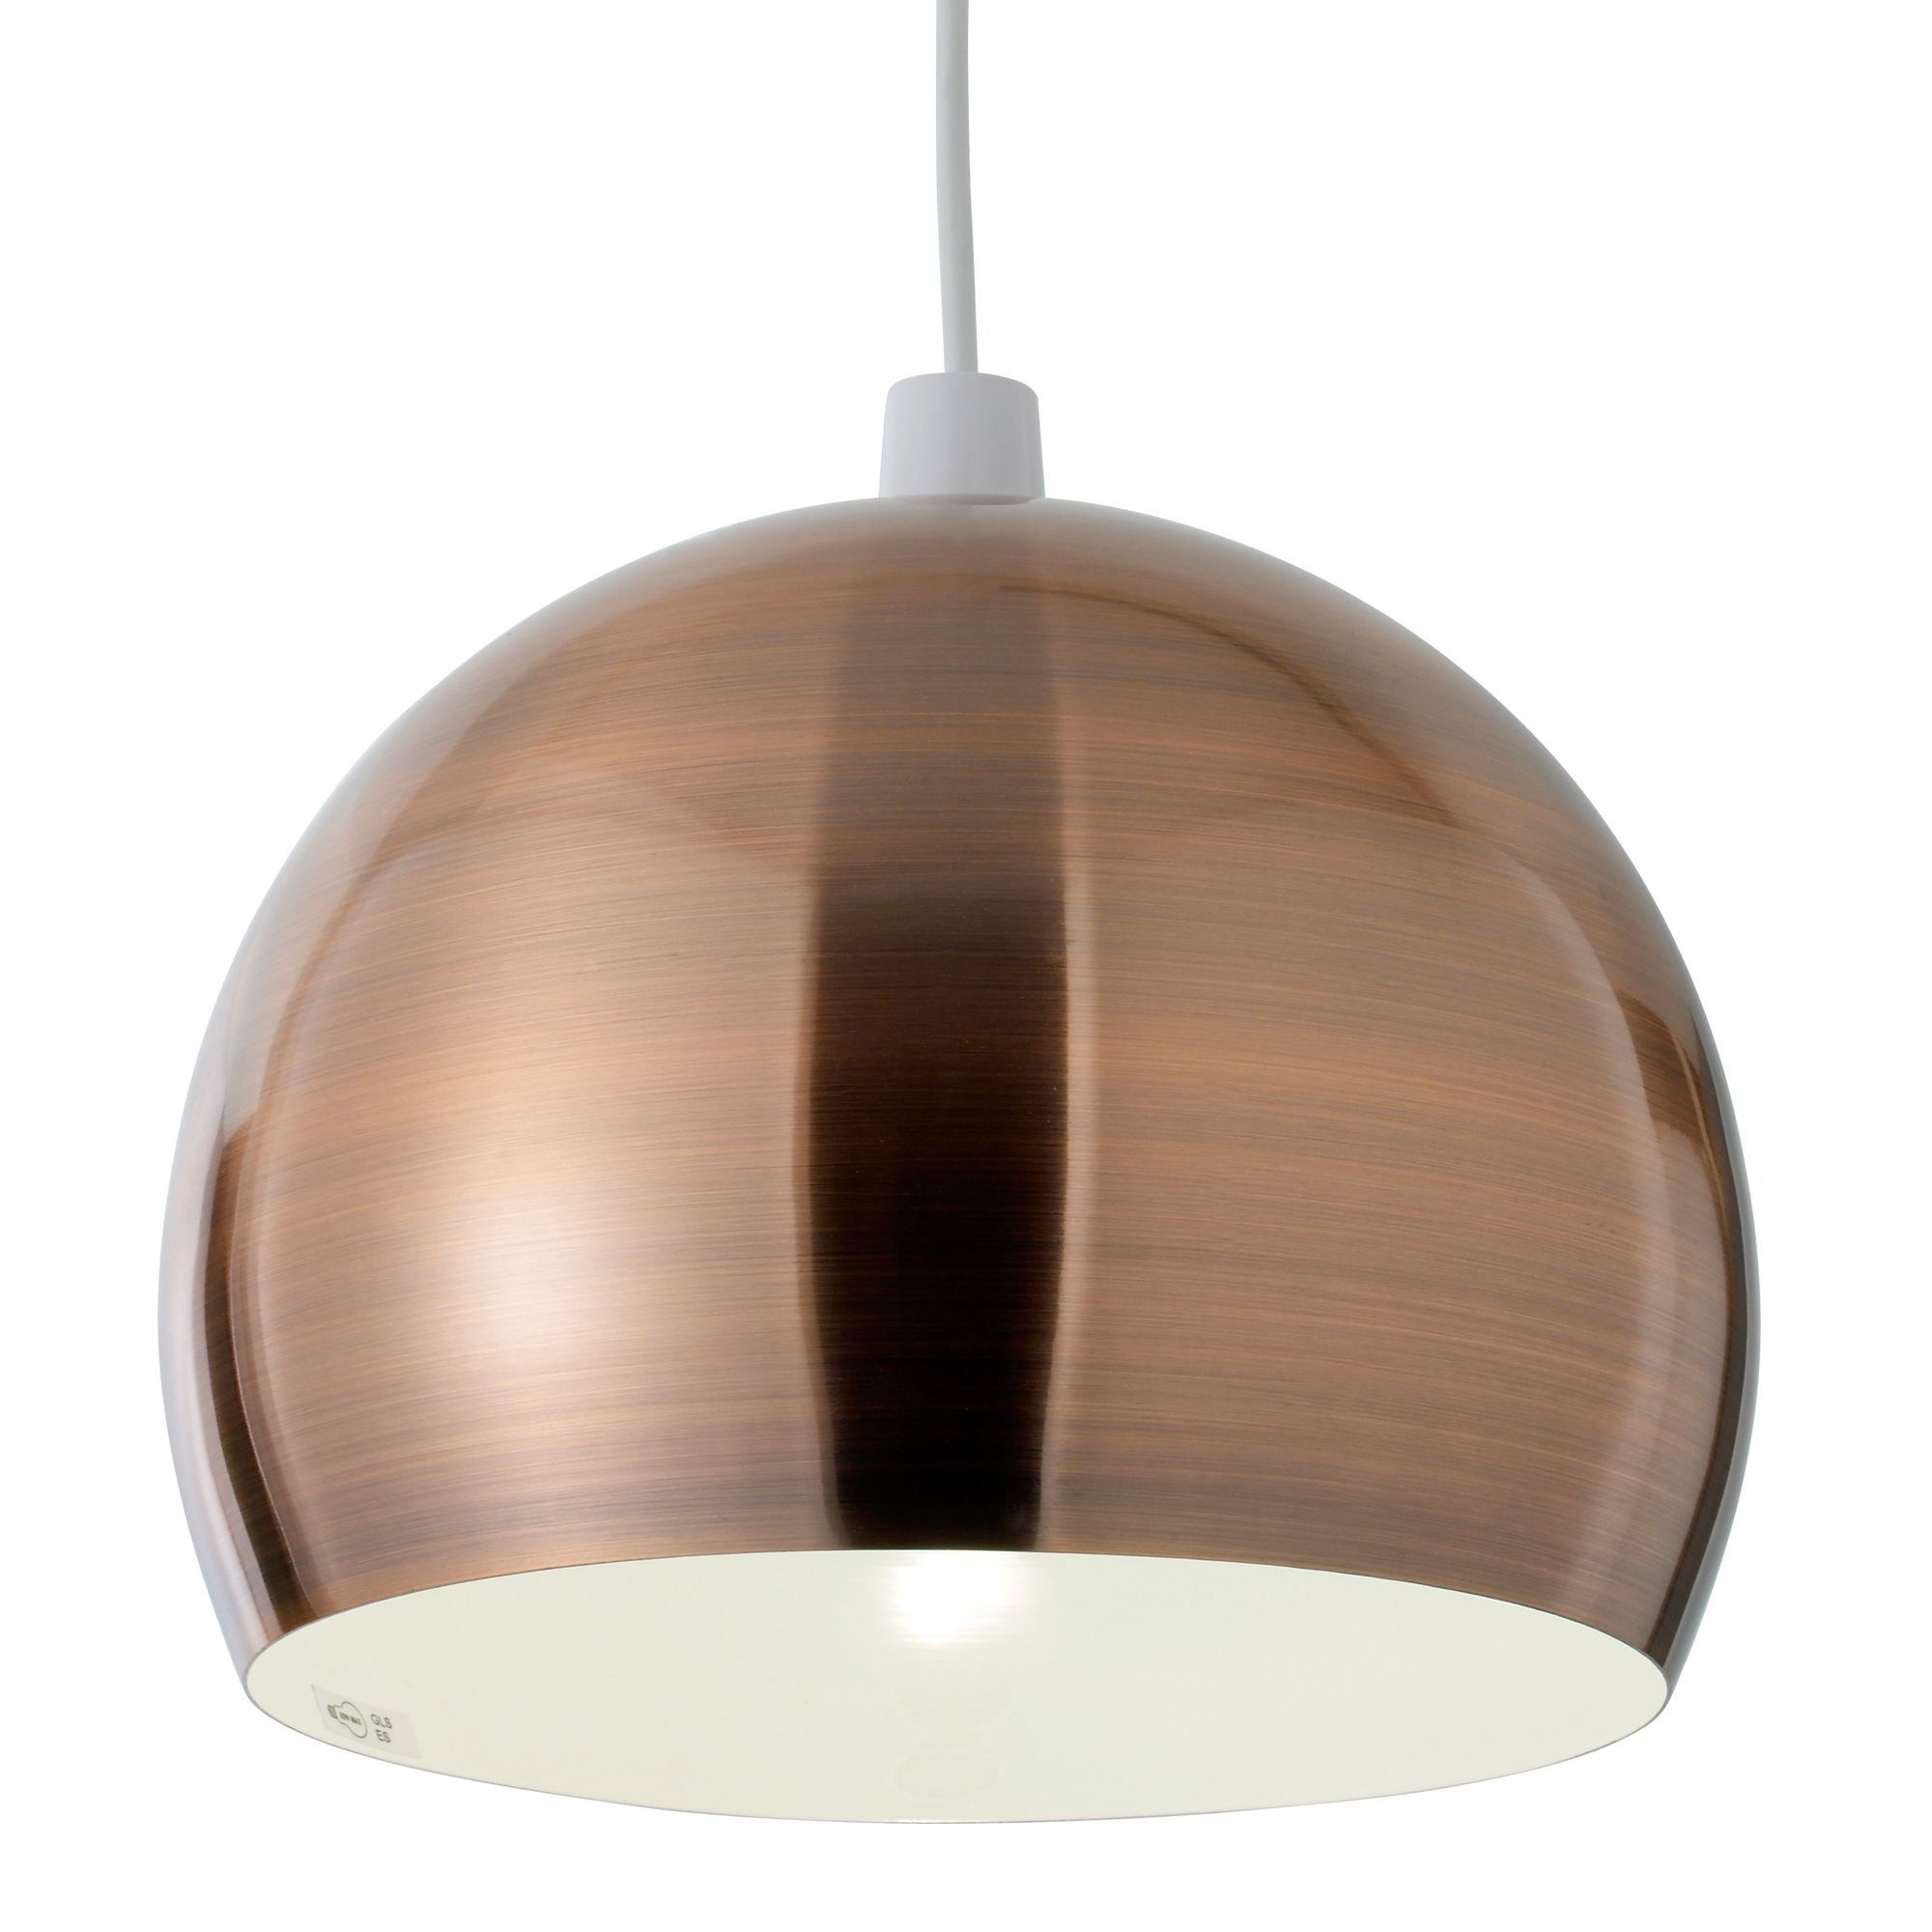 Nell Copper Pendant Light Shade D285cm